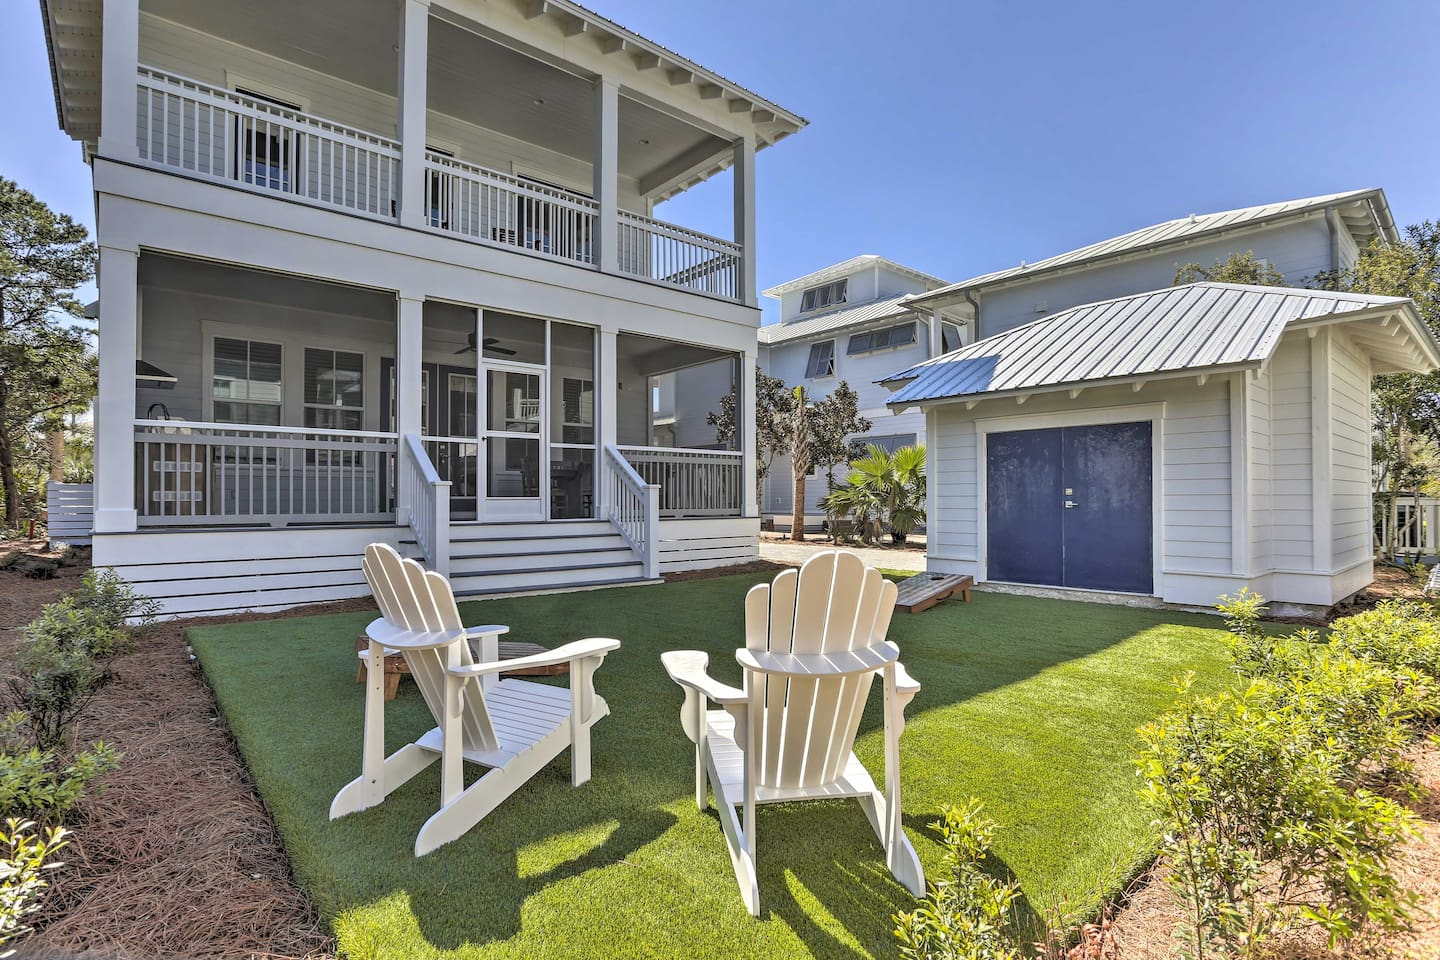 Book a trip to this lavish 5-bedroom, 5.5-bathroom vacation rental home in PCB.